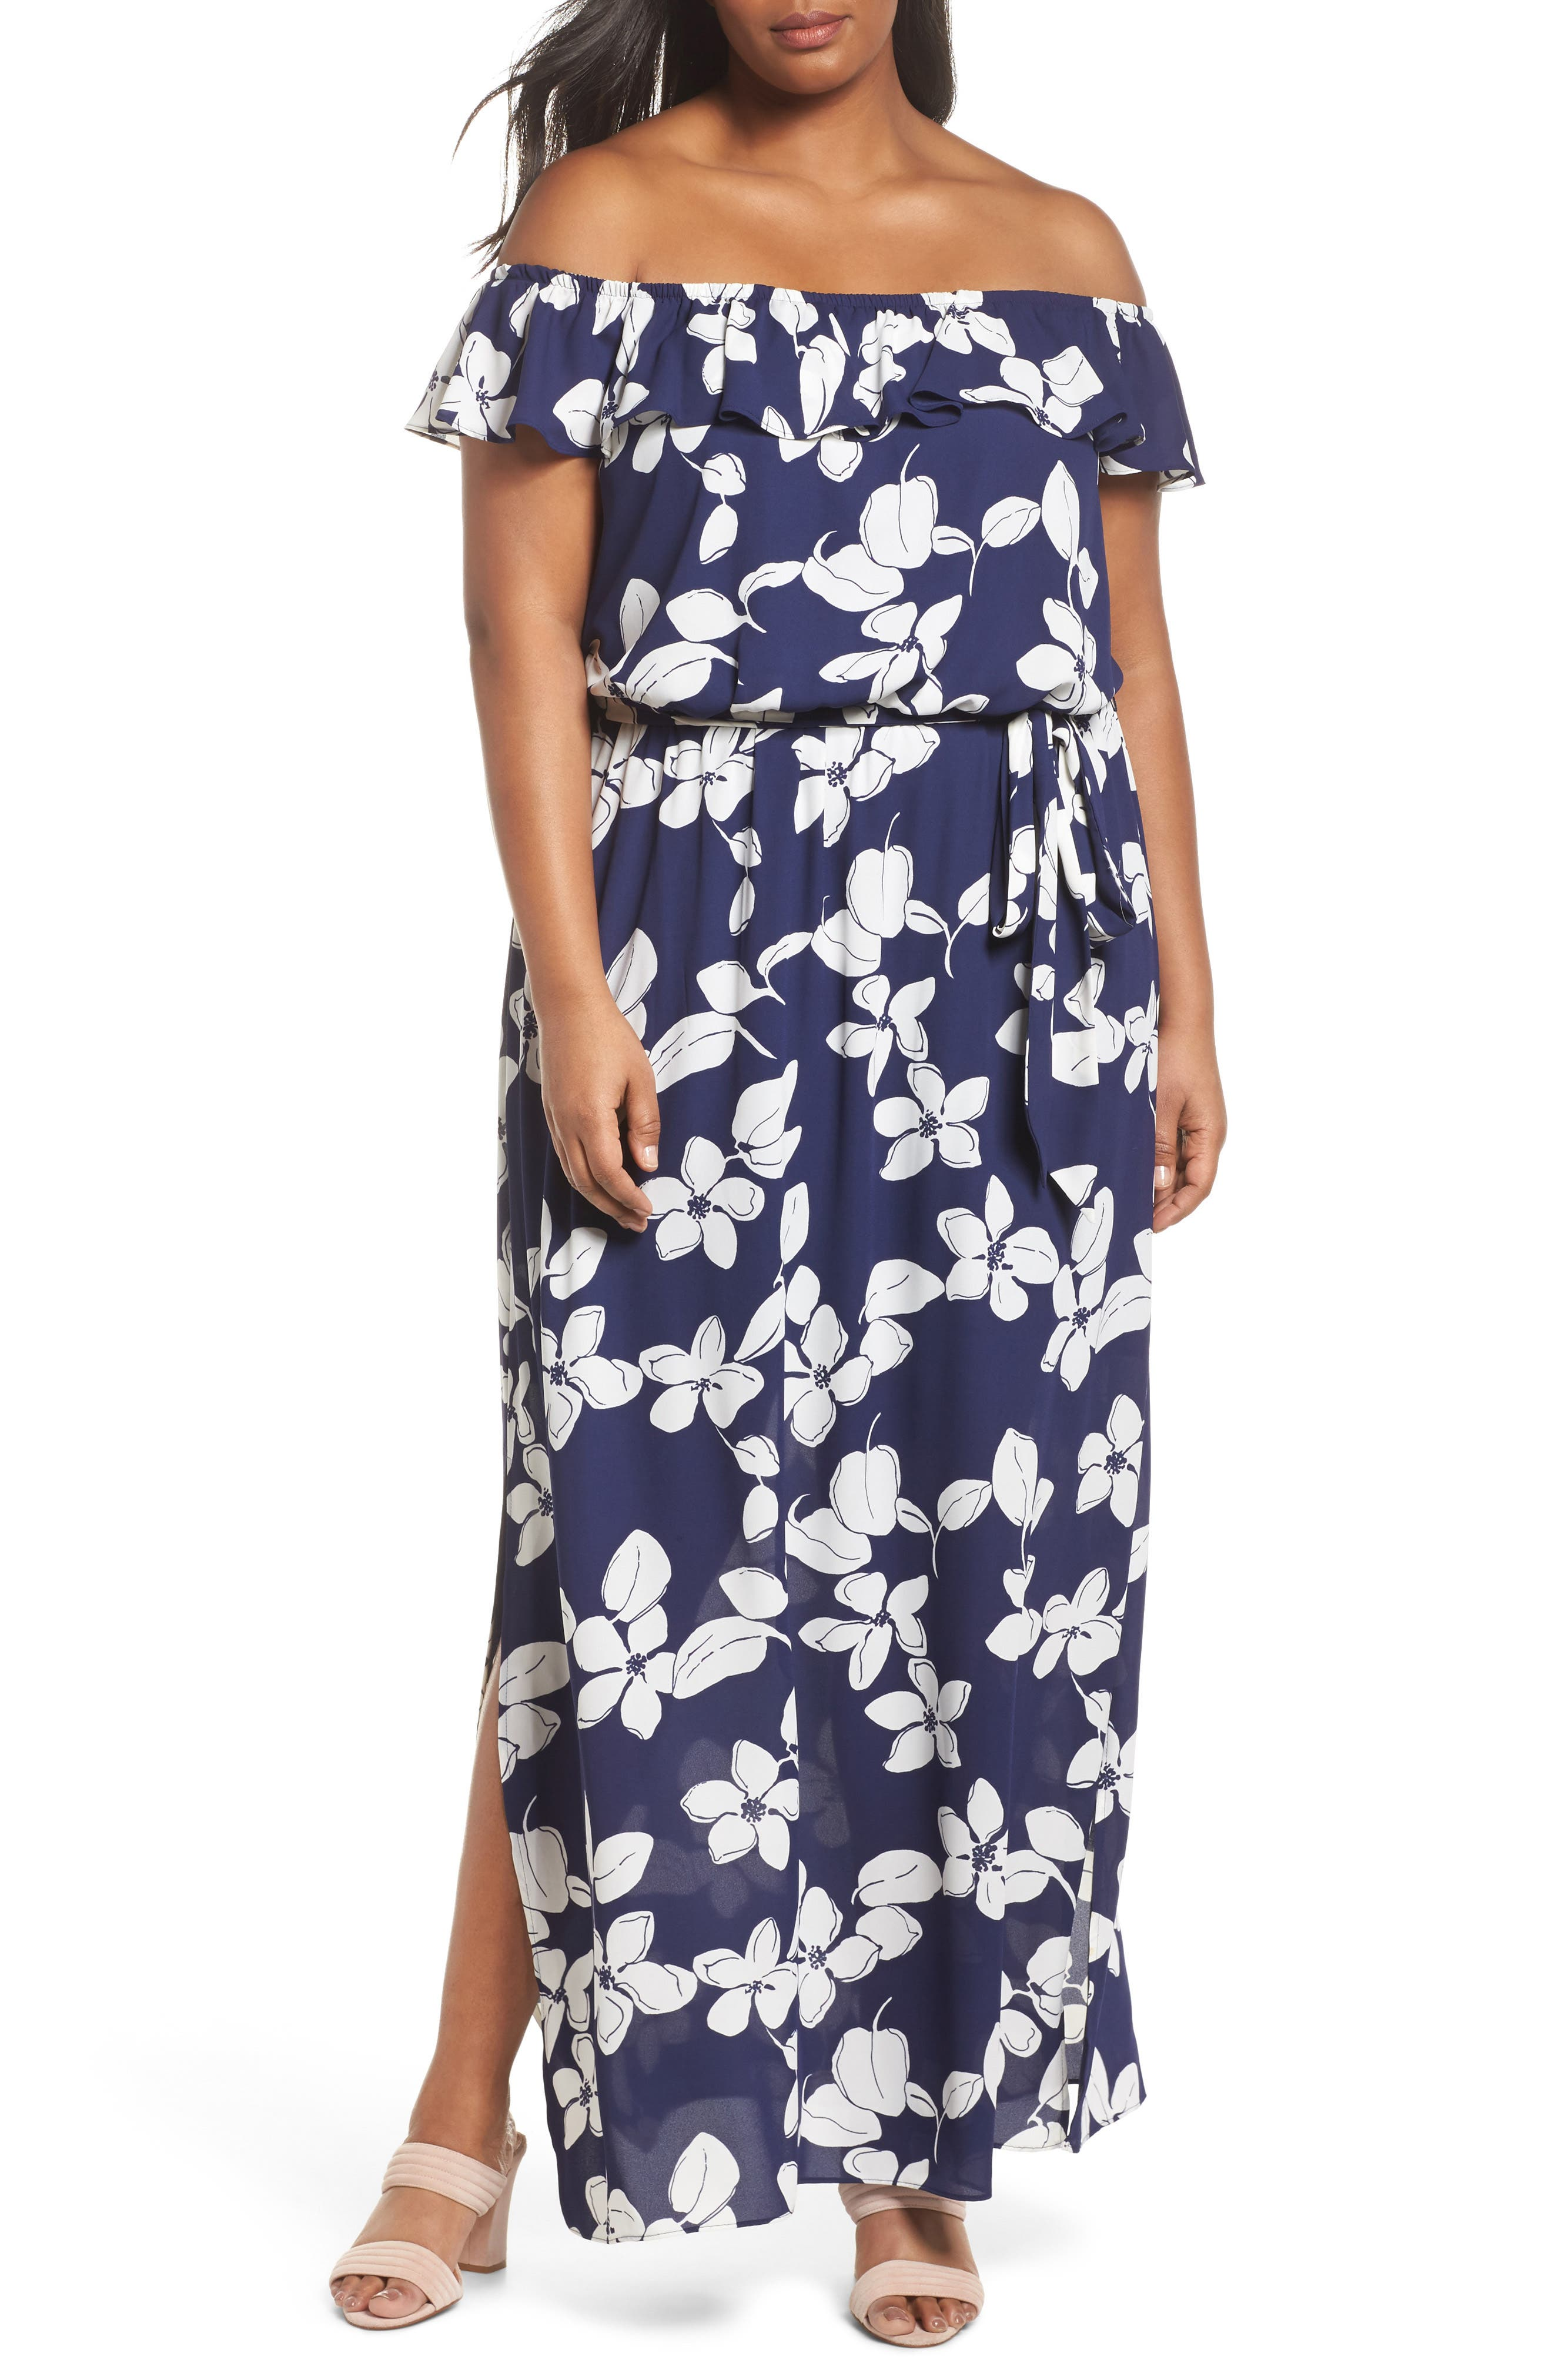 Adrianna Papell Simple Delight Ruffle Maxi Dress (Plus Size)